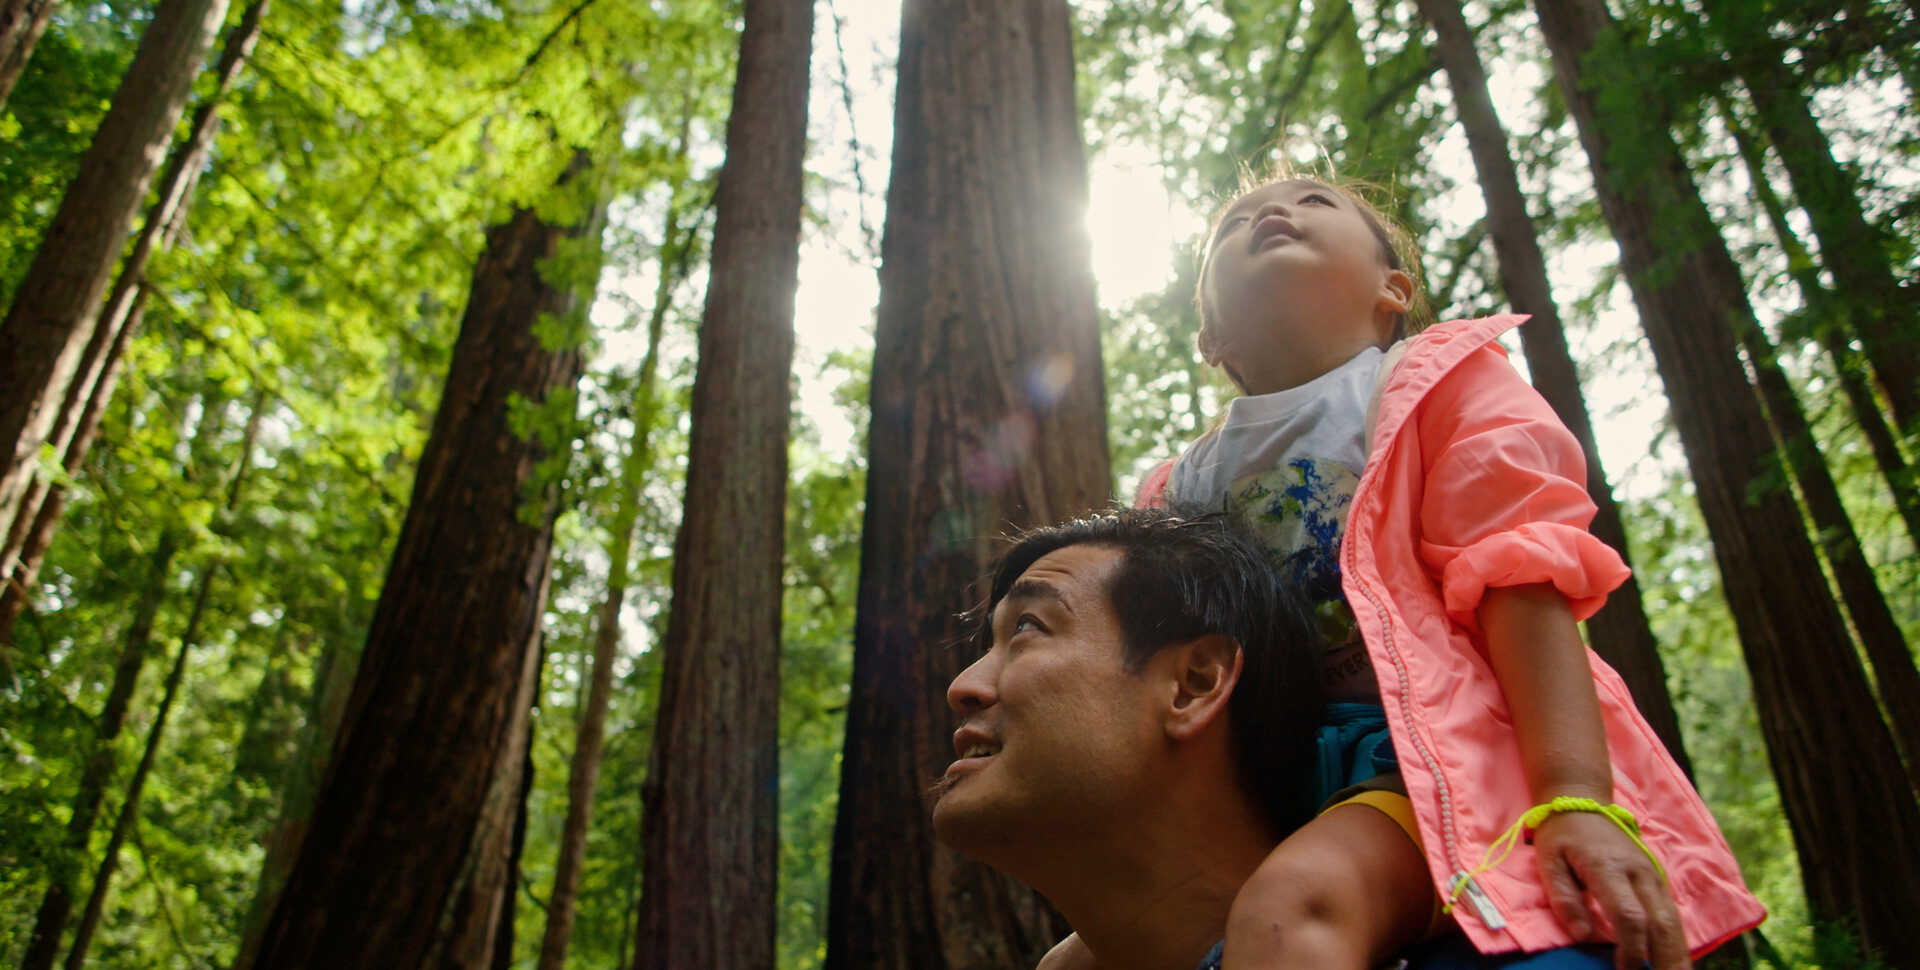 A young girl sits on man's shoulders in sun-dappled redwood forest